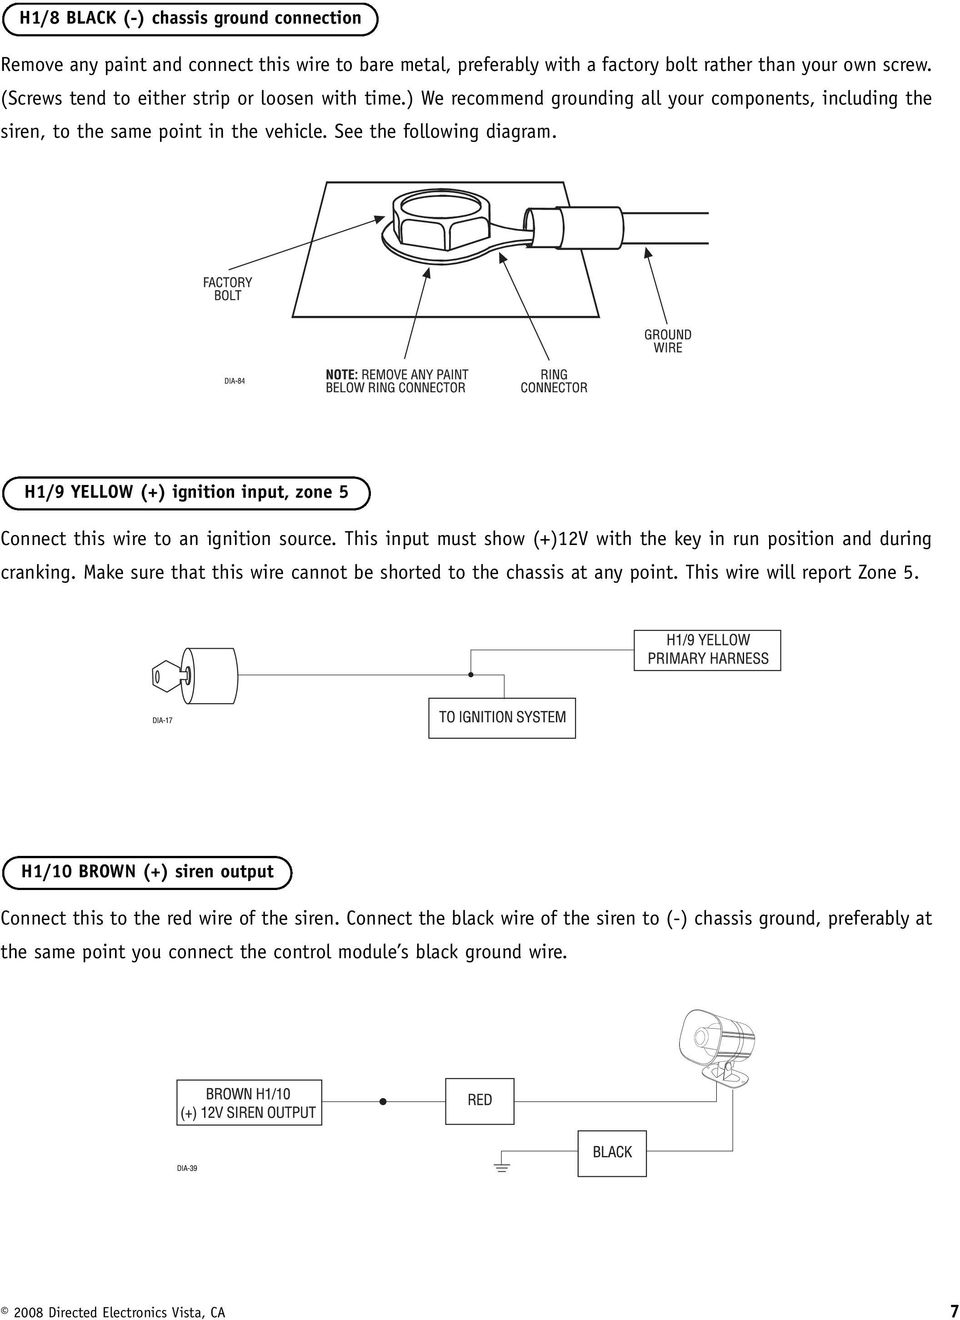 Model 3100l Installation Guide Pdf Avital 3100 Car Alarm Wiring Diagram H1 9 Yellow Ignition Input Zone 5 Connect This Wire To